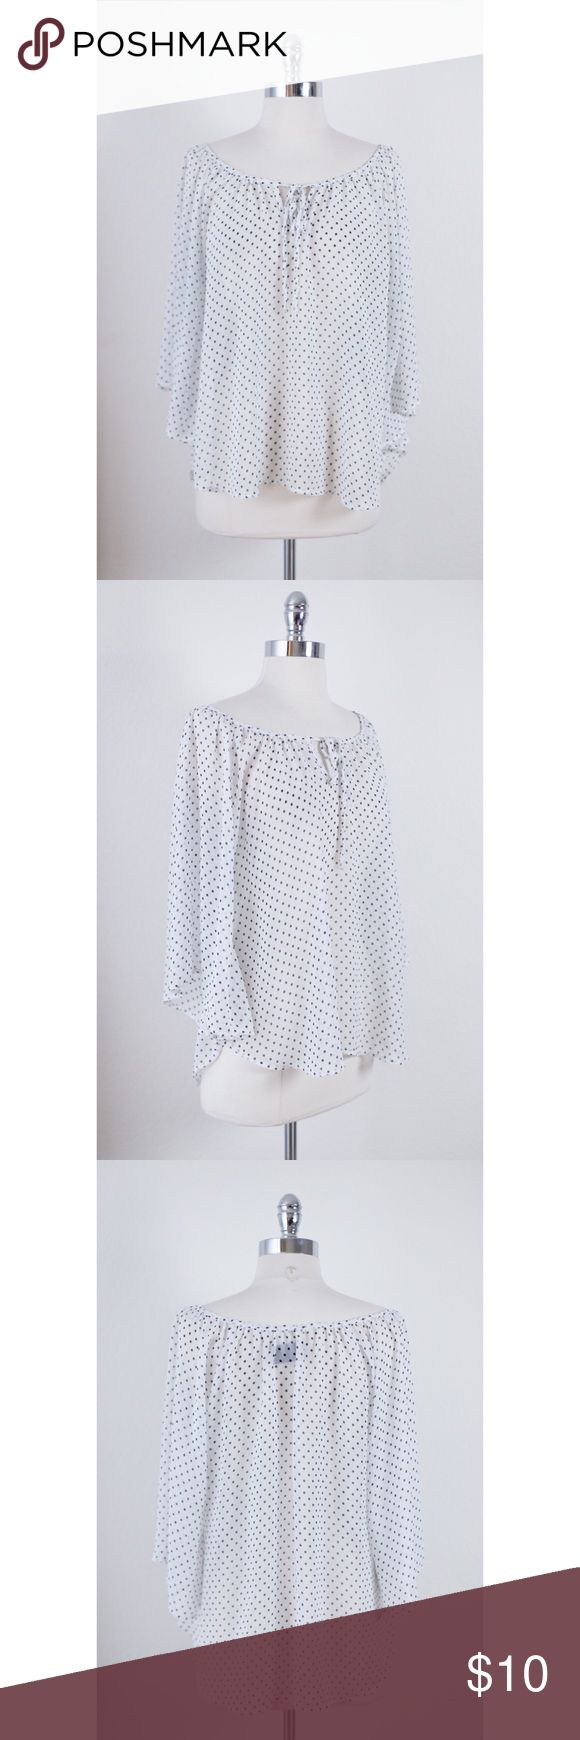 White and Black Polka Dot Print Batwing Dolman Top This is an adorable white and black polka dot blouse featuring a round neck and batwing dolman sleeves. Front tie closure. Well loved but in great shape! 100% Polyester. Hand wash cold. Made in USA. Tops Blouses